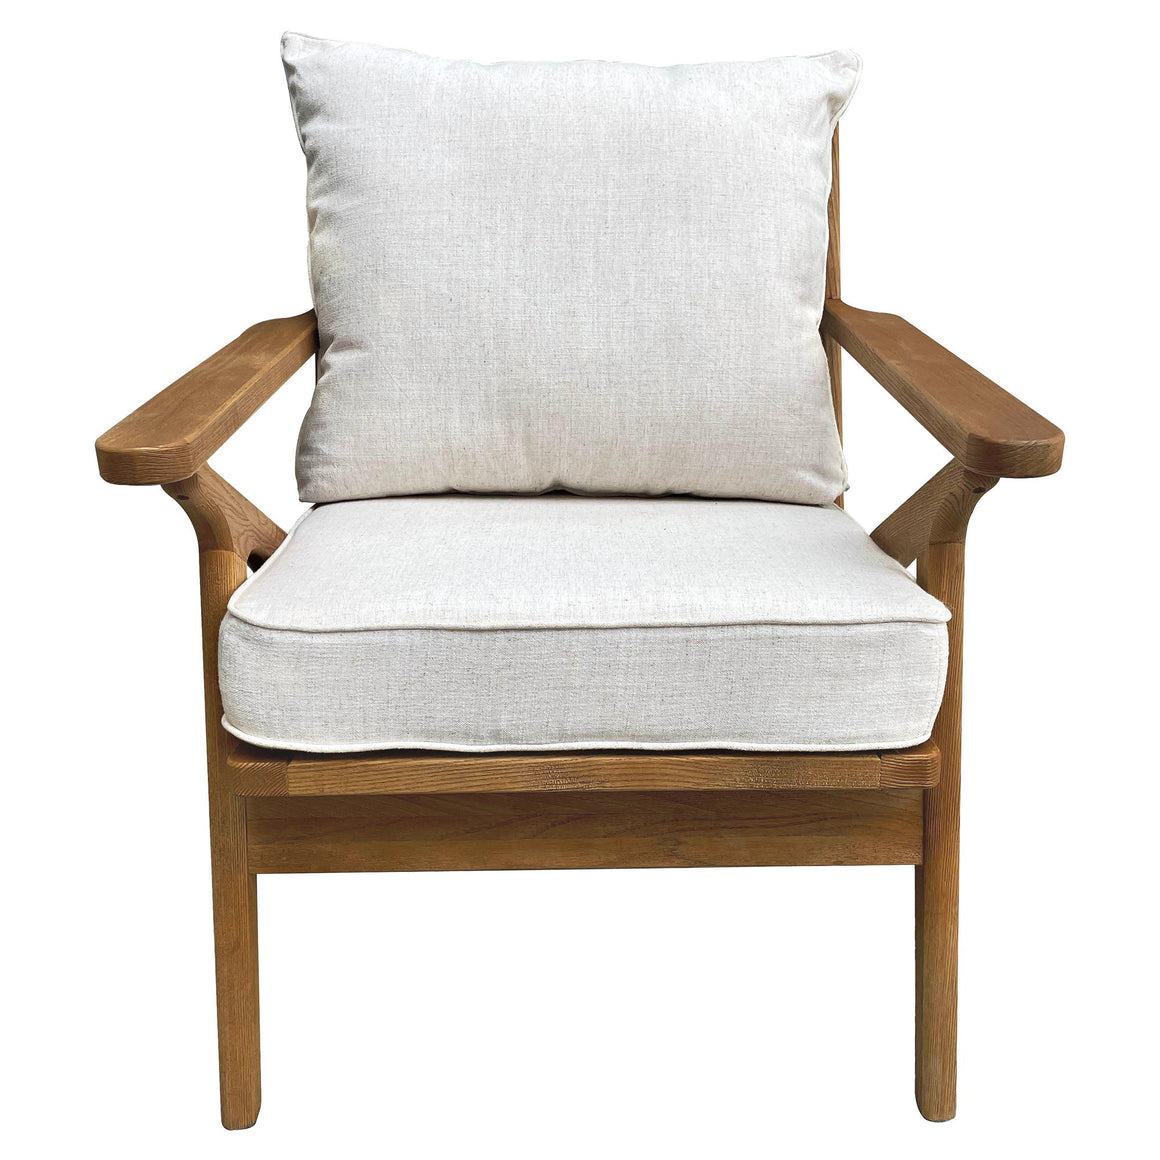 ASH WOOD CHAIR W/NATURAL CREAM CUSHIONS